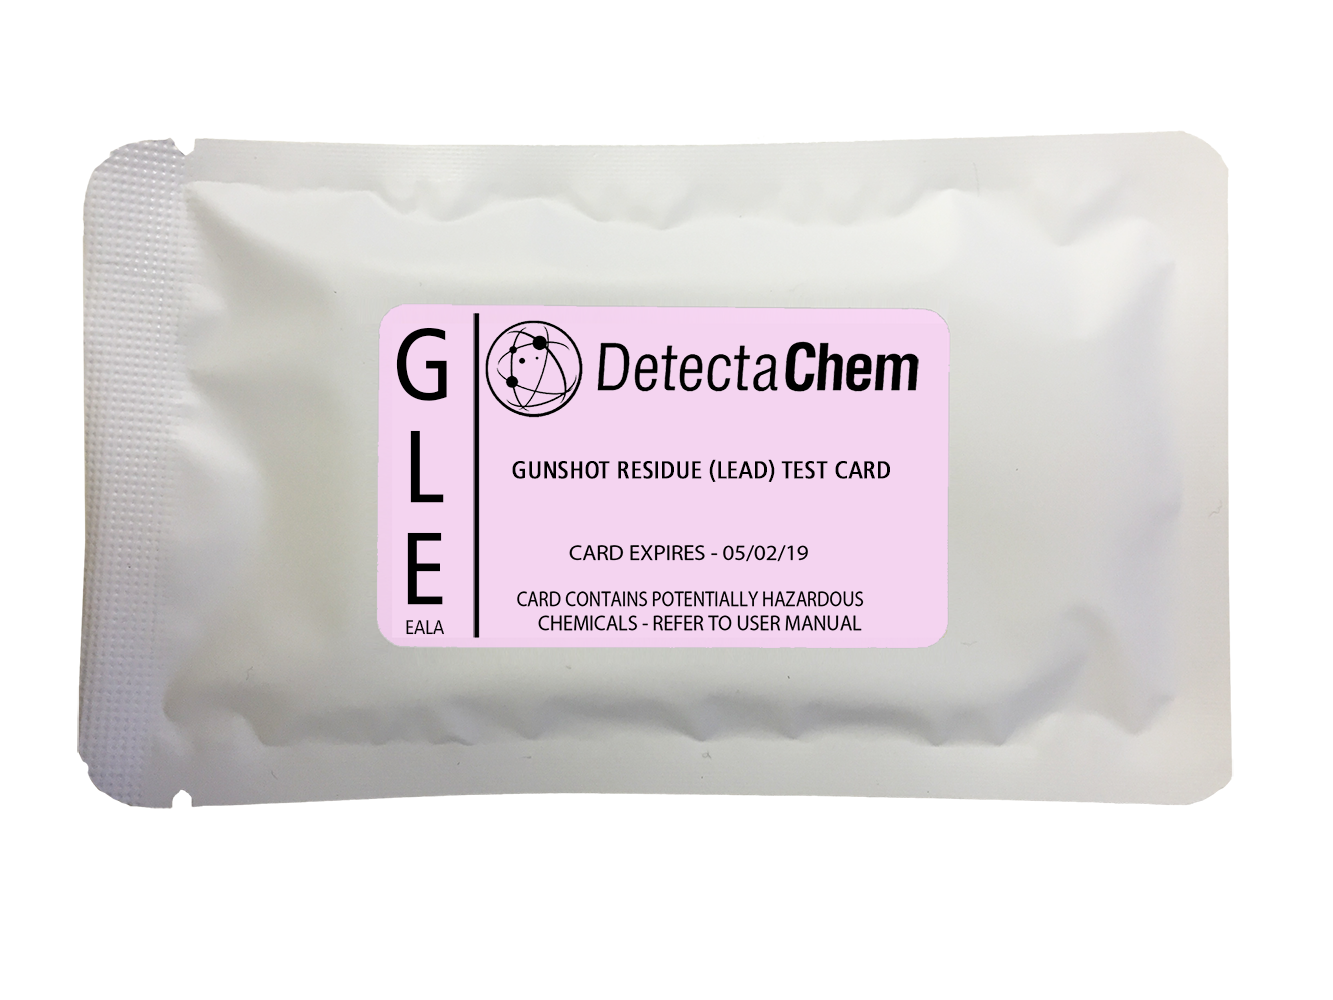 DetectaChem GSR Lead Detection Card (Box of 100)